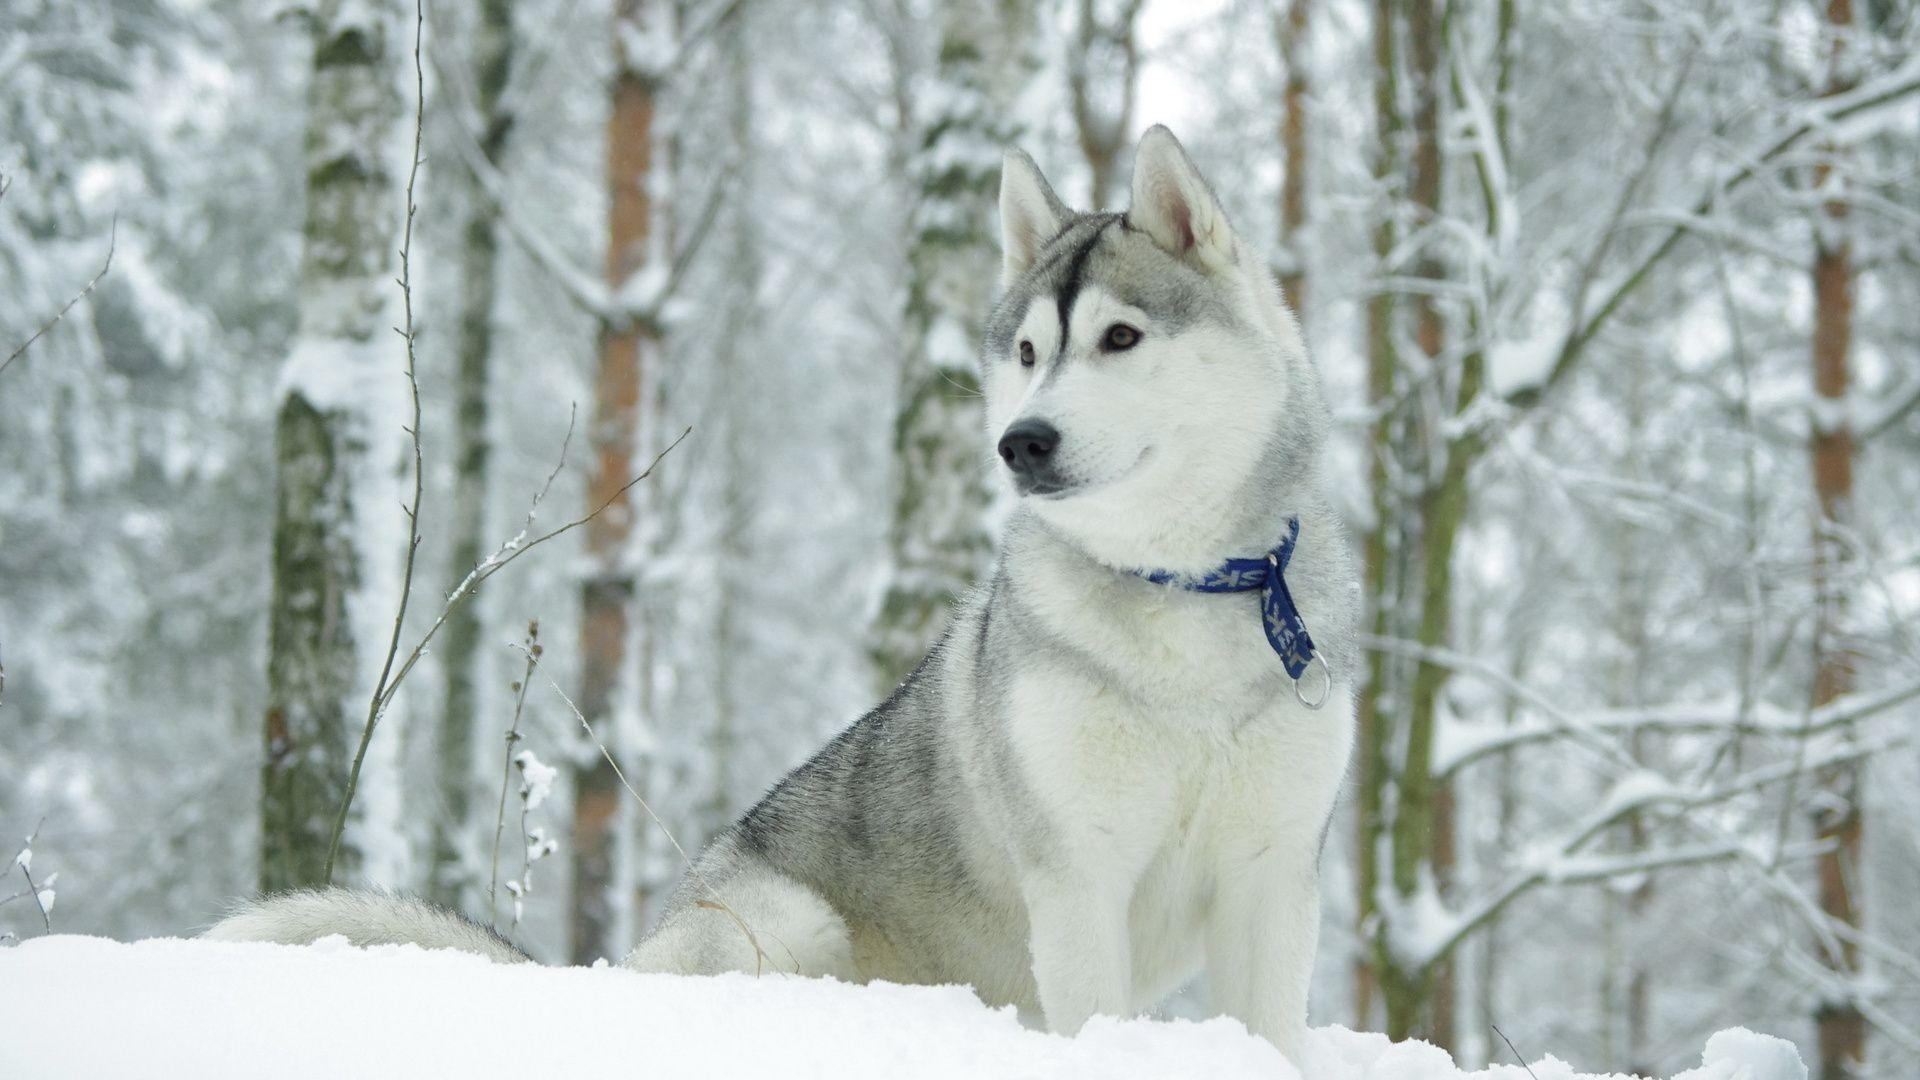 Beautiful Alaskan Malamute in the snow wallpapers and images ...